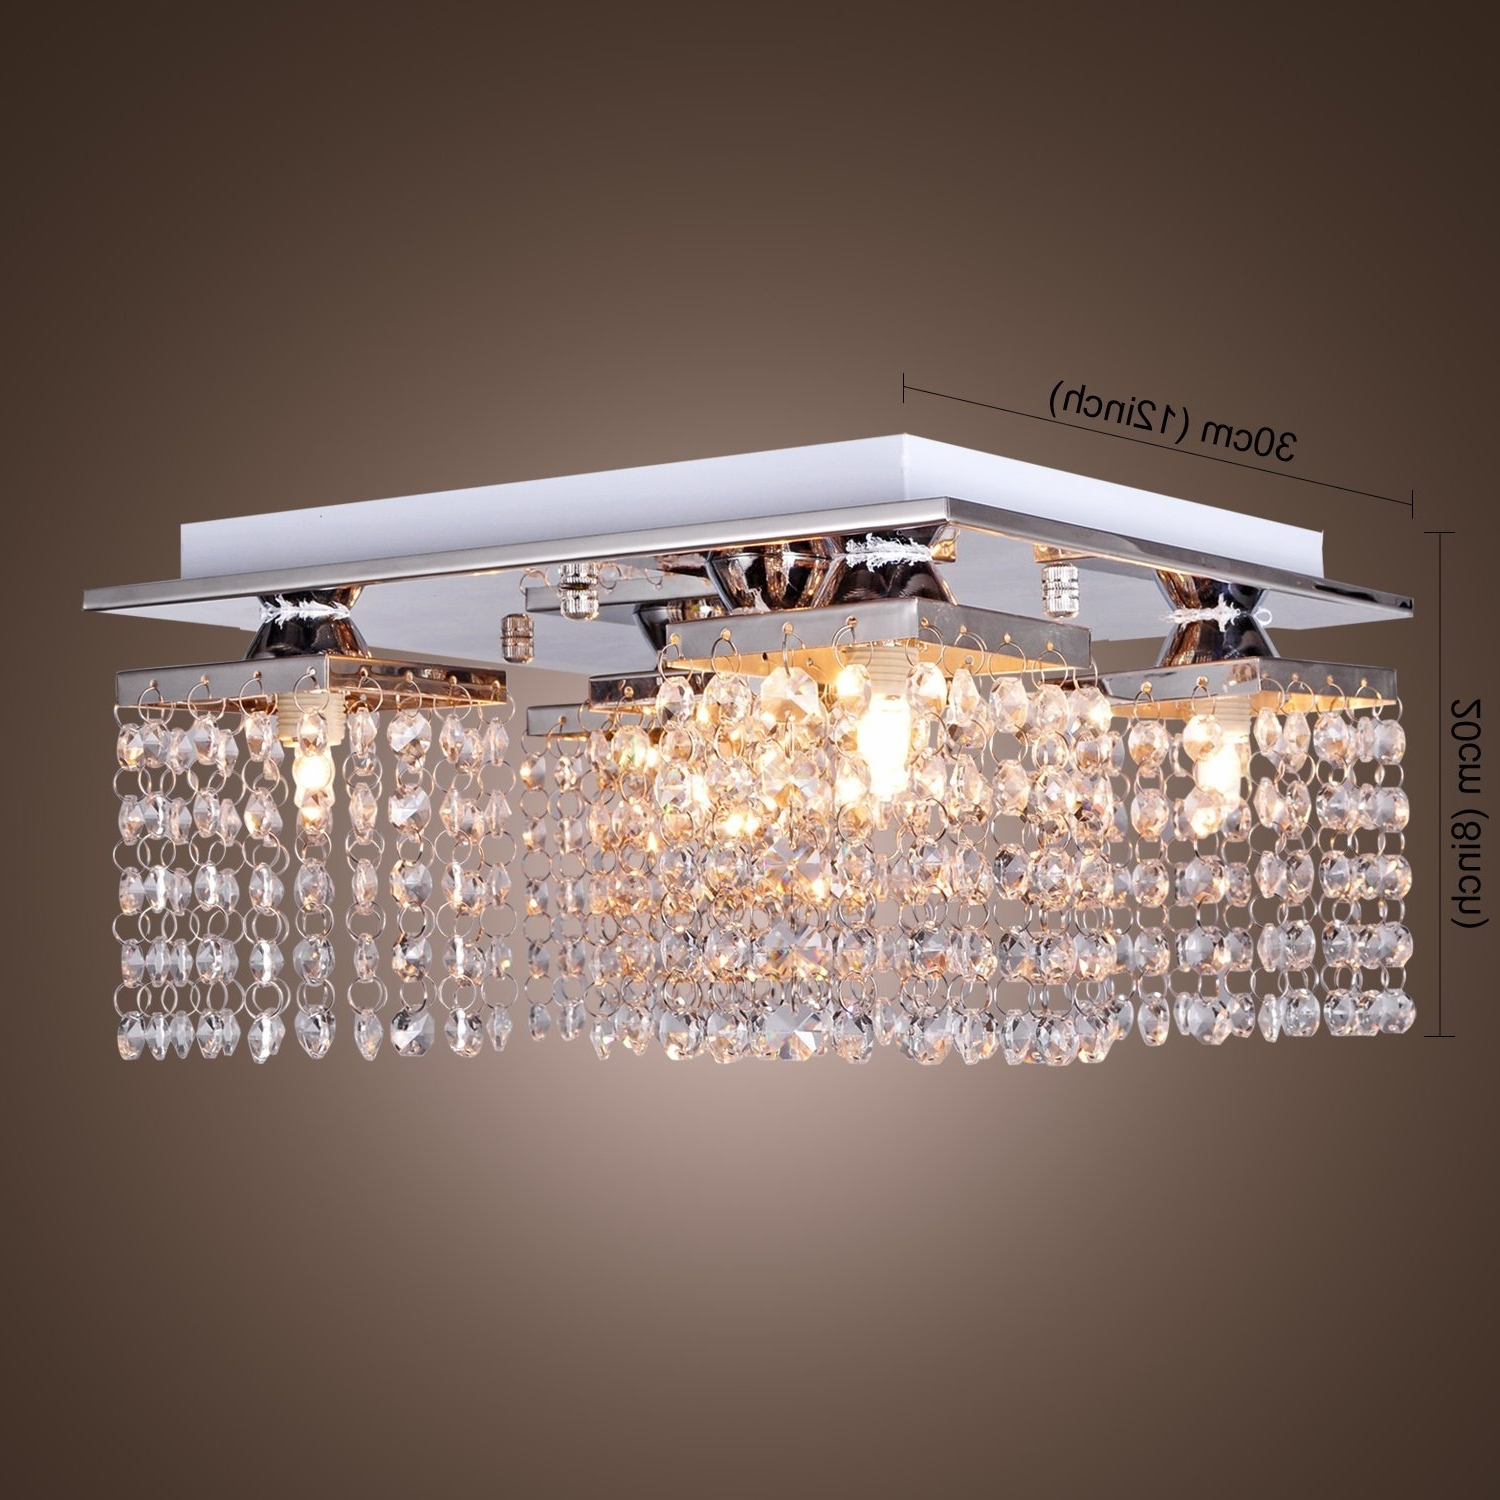 Chandeliers For Low Ceilings For Most Recent Ceiling: Lighting For Low Ceilings (View 5 of 15)